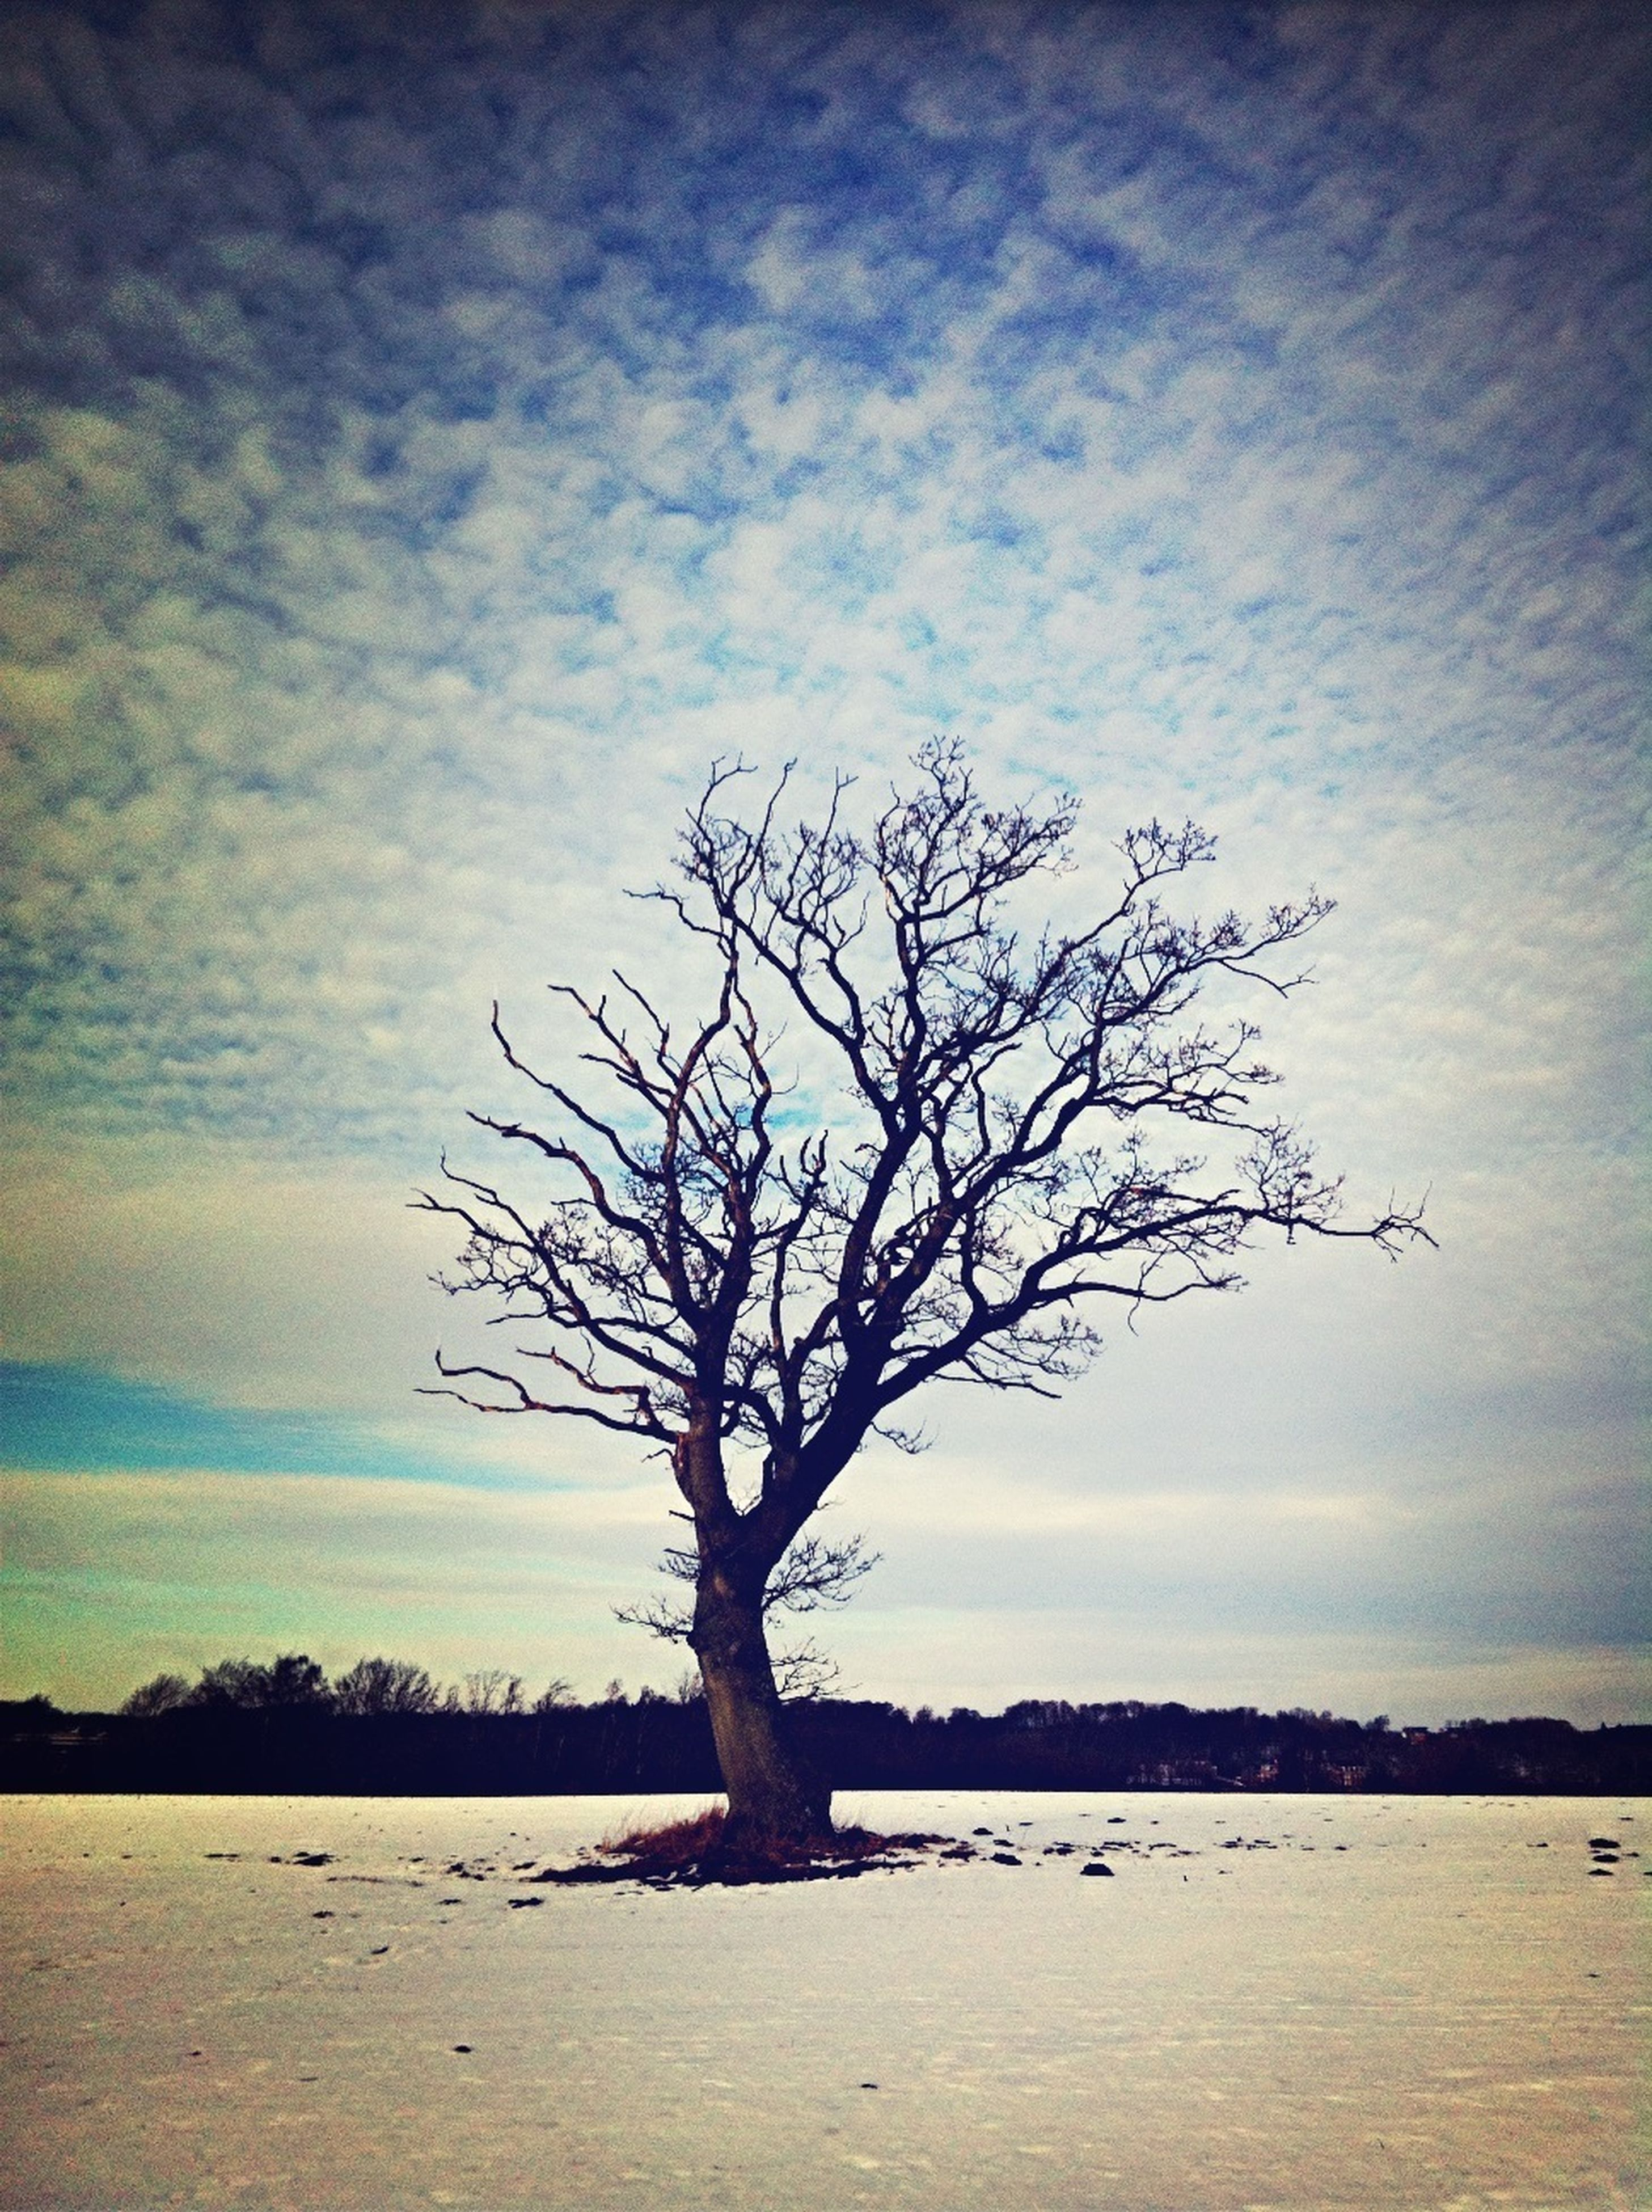 bare tree, tranquility, tranquil scene, water, tree, sky, branch, scenics, beauty in nature, nature, lake, silhouette, tree trunk, cloud - sky, landscape, idyllic, non-urban scene, sea, cloud, no people